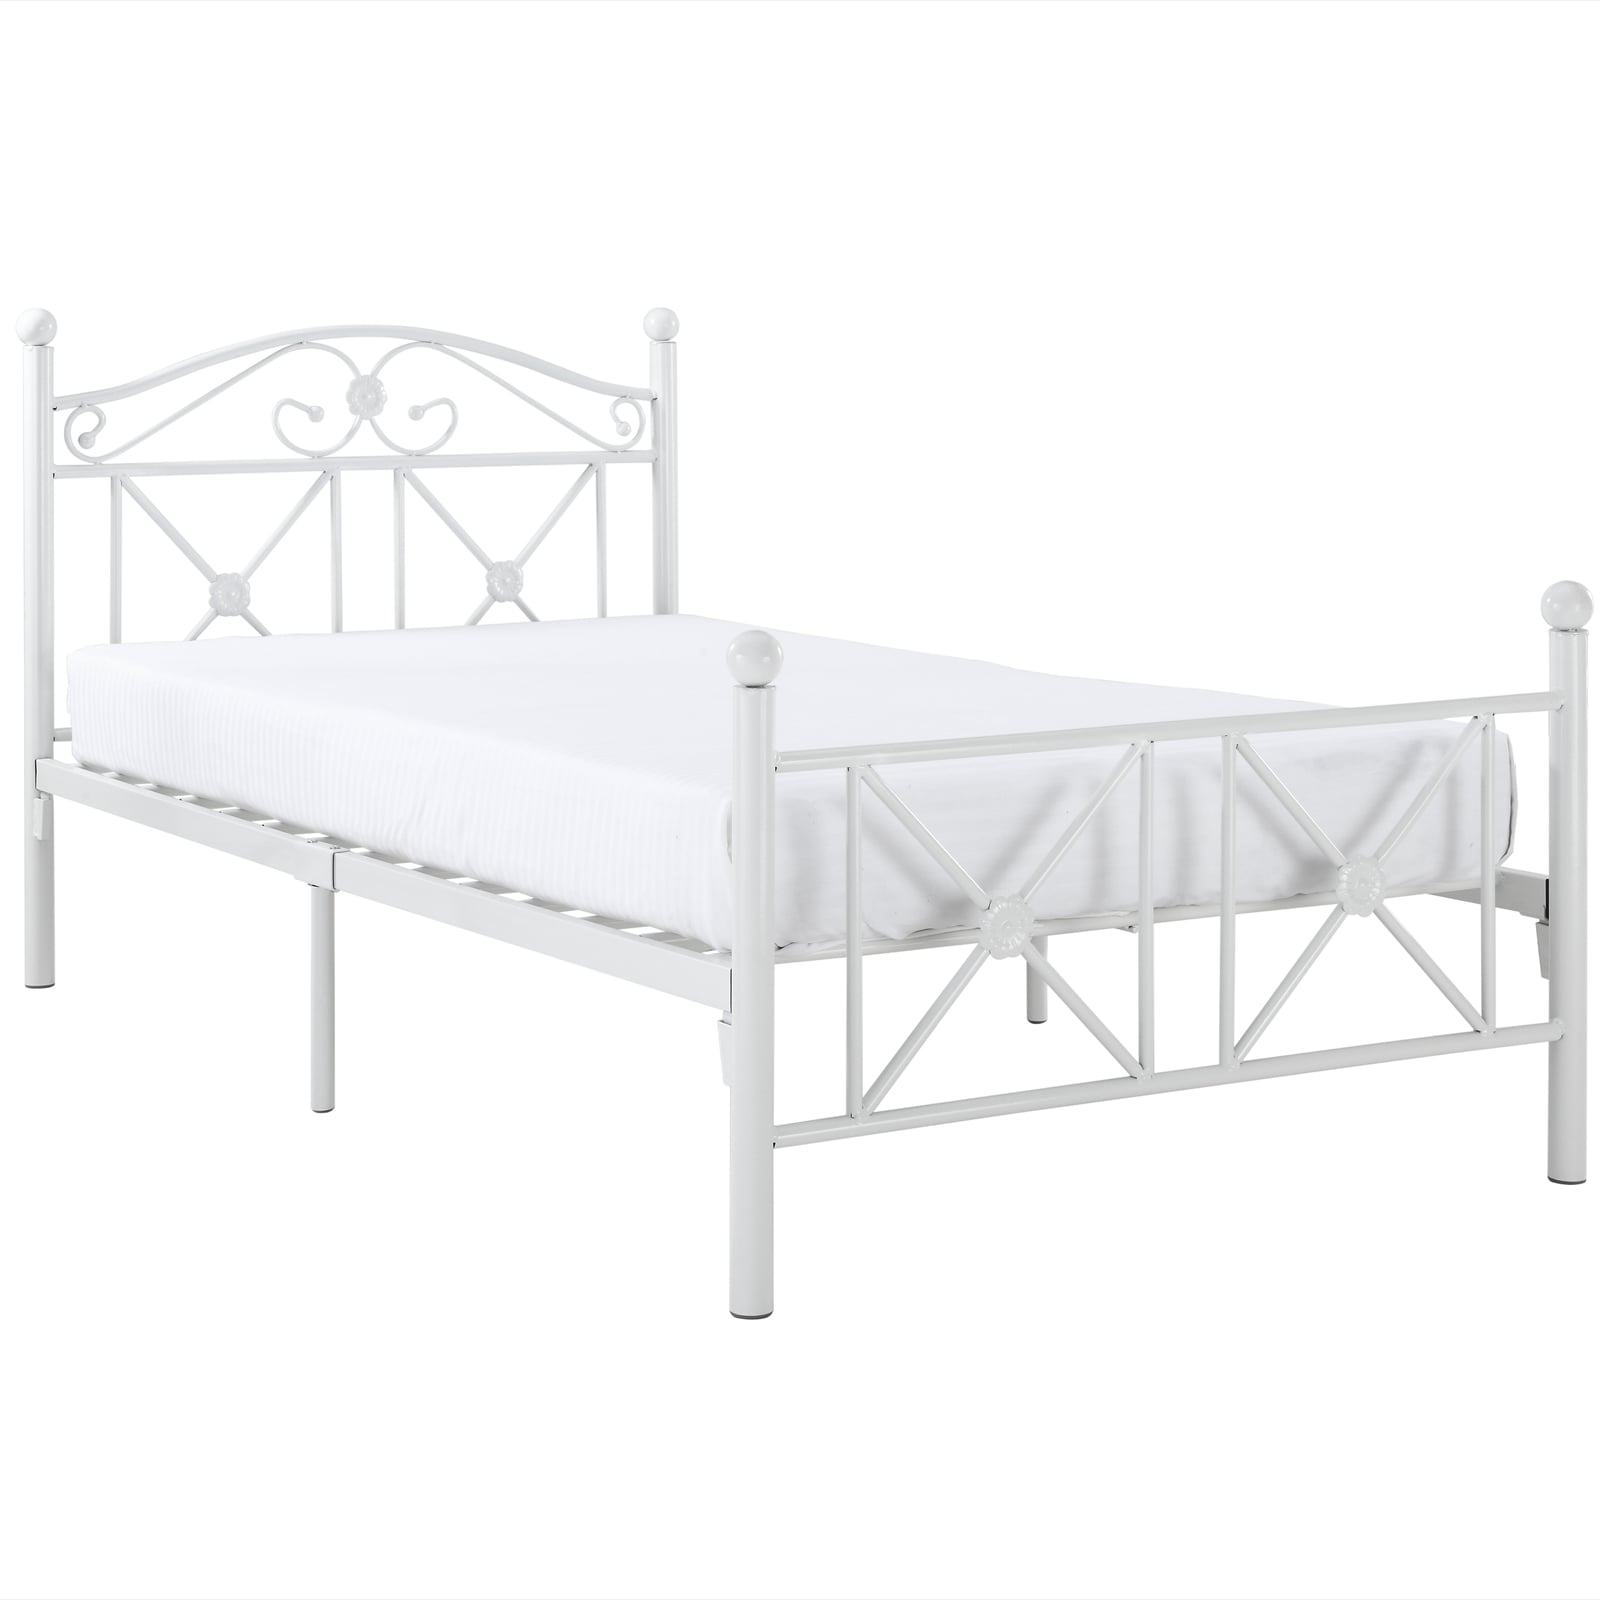 Image of: Shop Black Friday Deals On Country Cottage Iron Twin Bed Frame Overstock 7324602